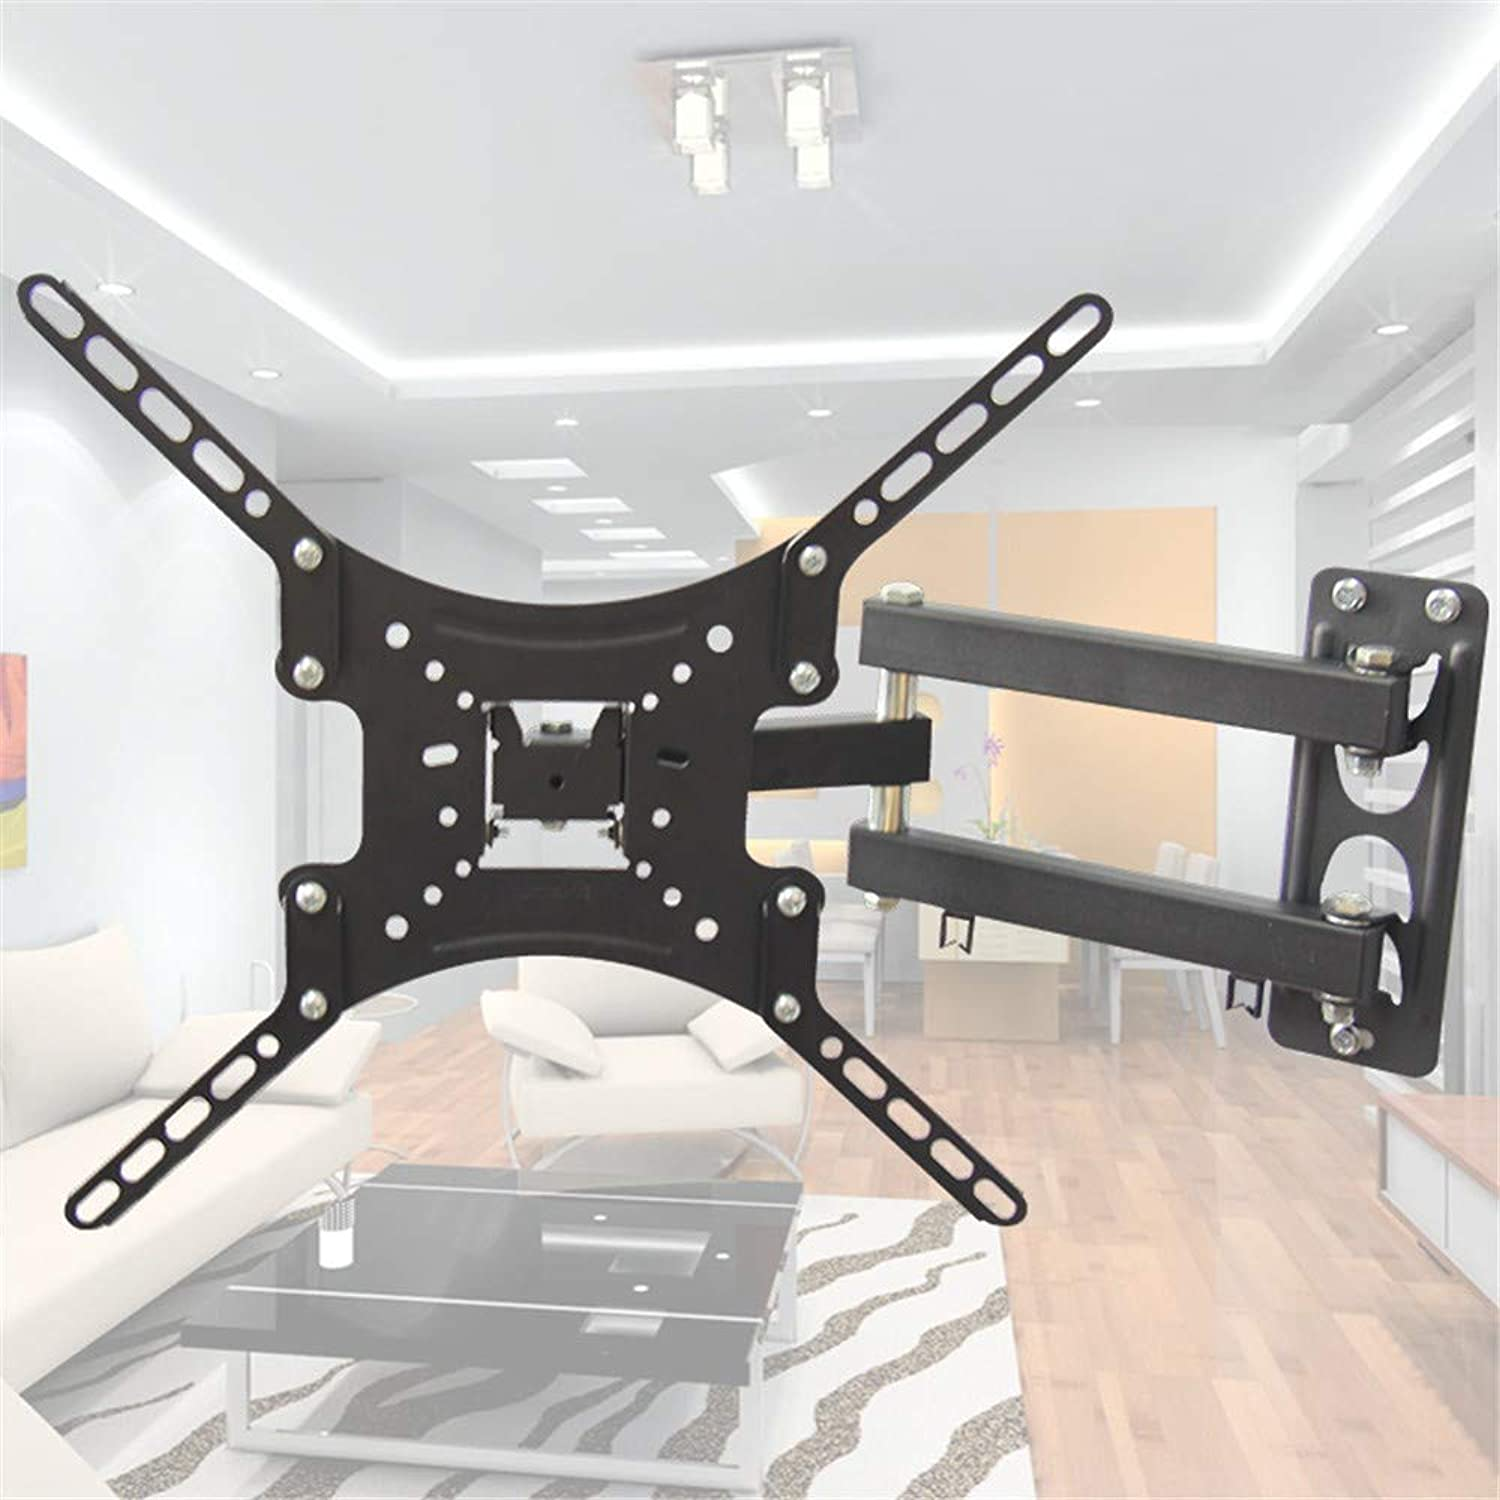 Universal Multi-Function TV Rack Multi-Directional Telescopic redating LCD TV Monitor Wall Mount Bracket Suitable for 10 -55